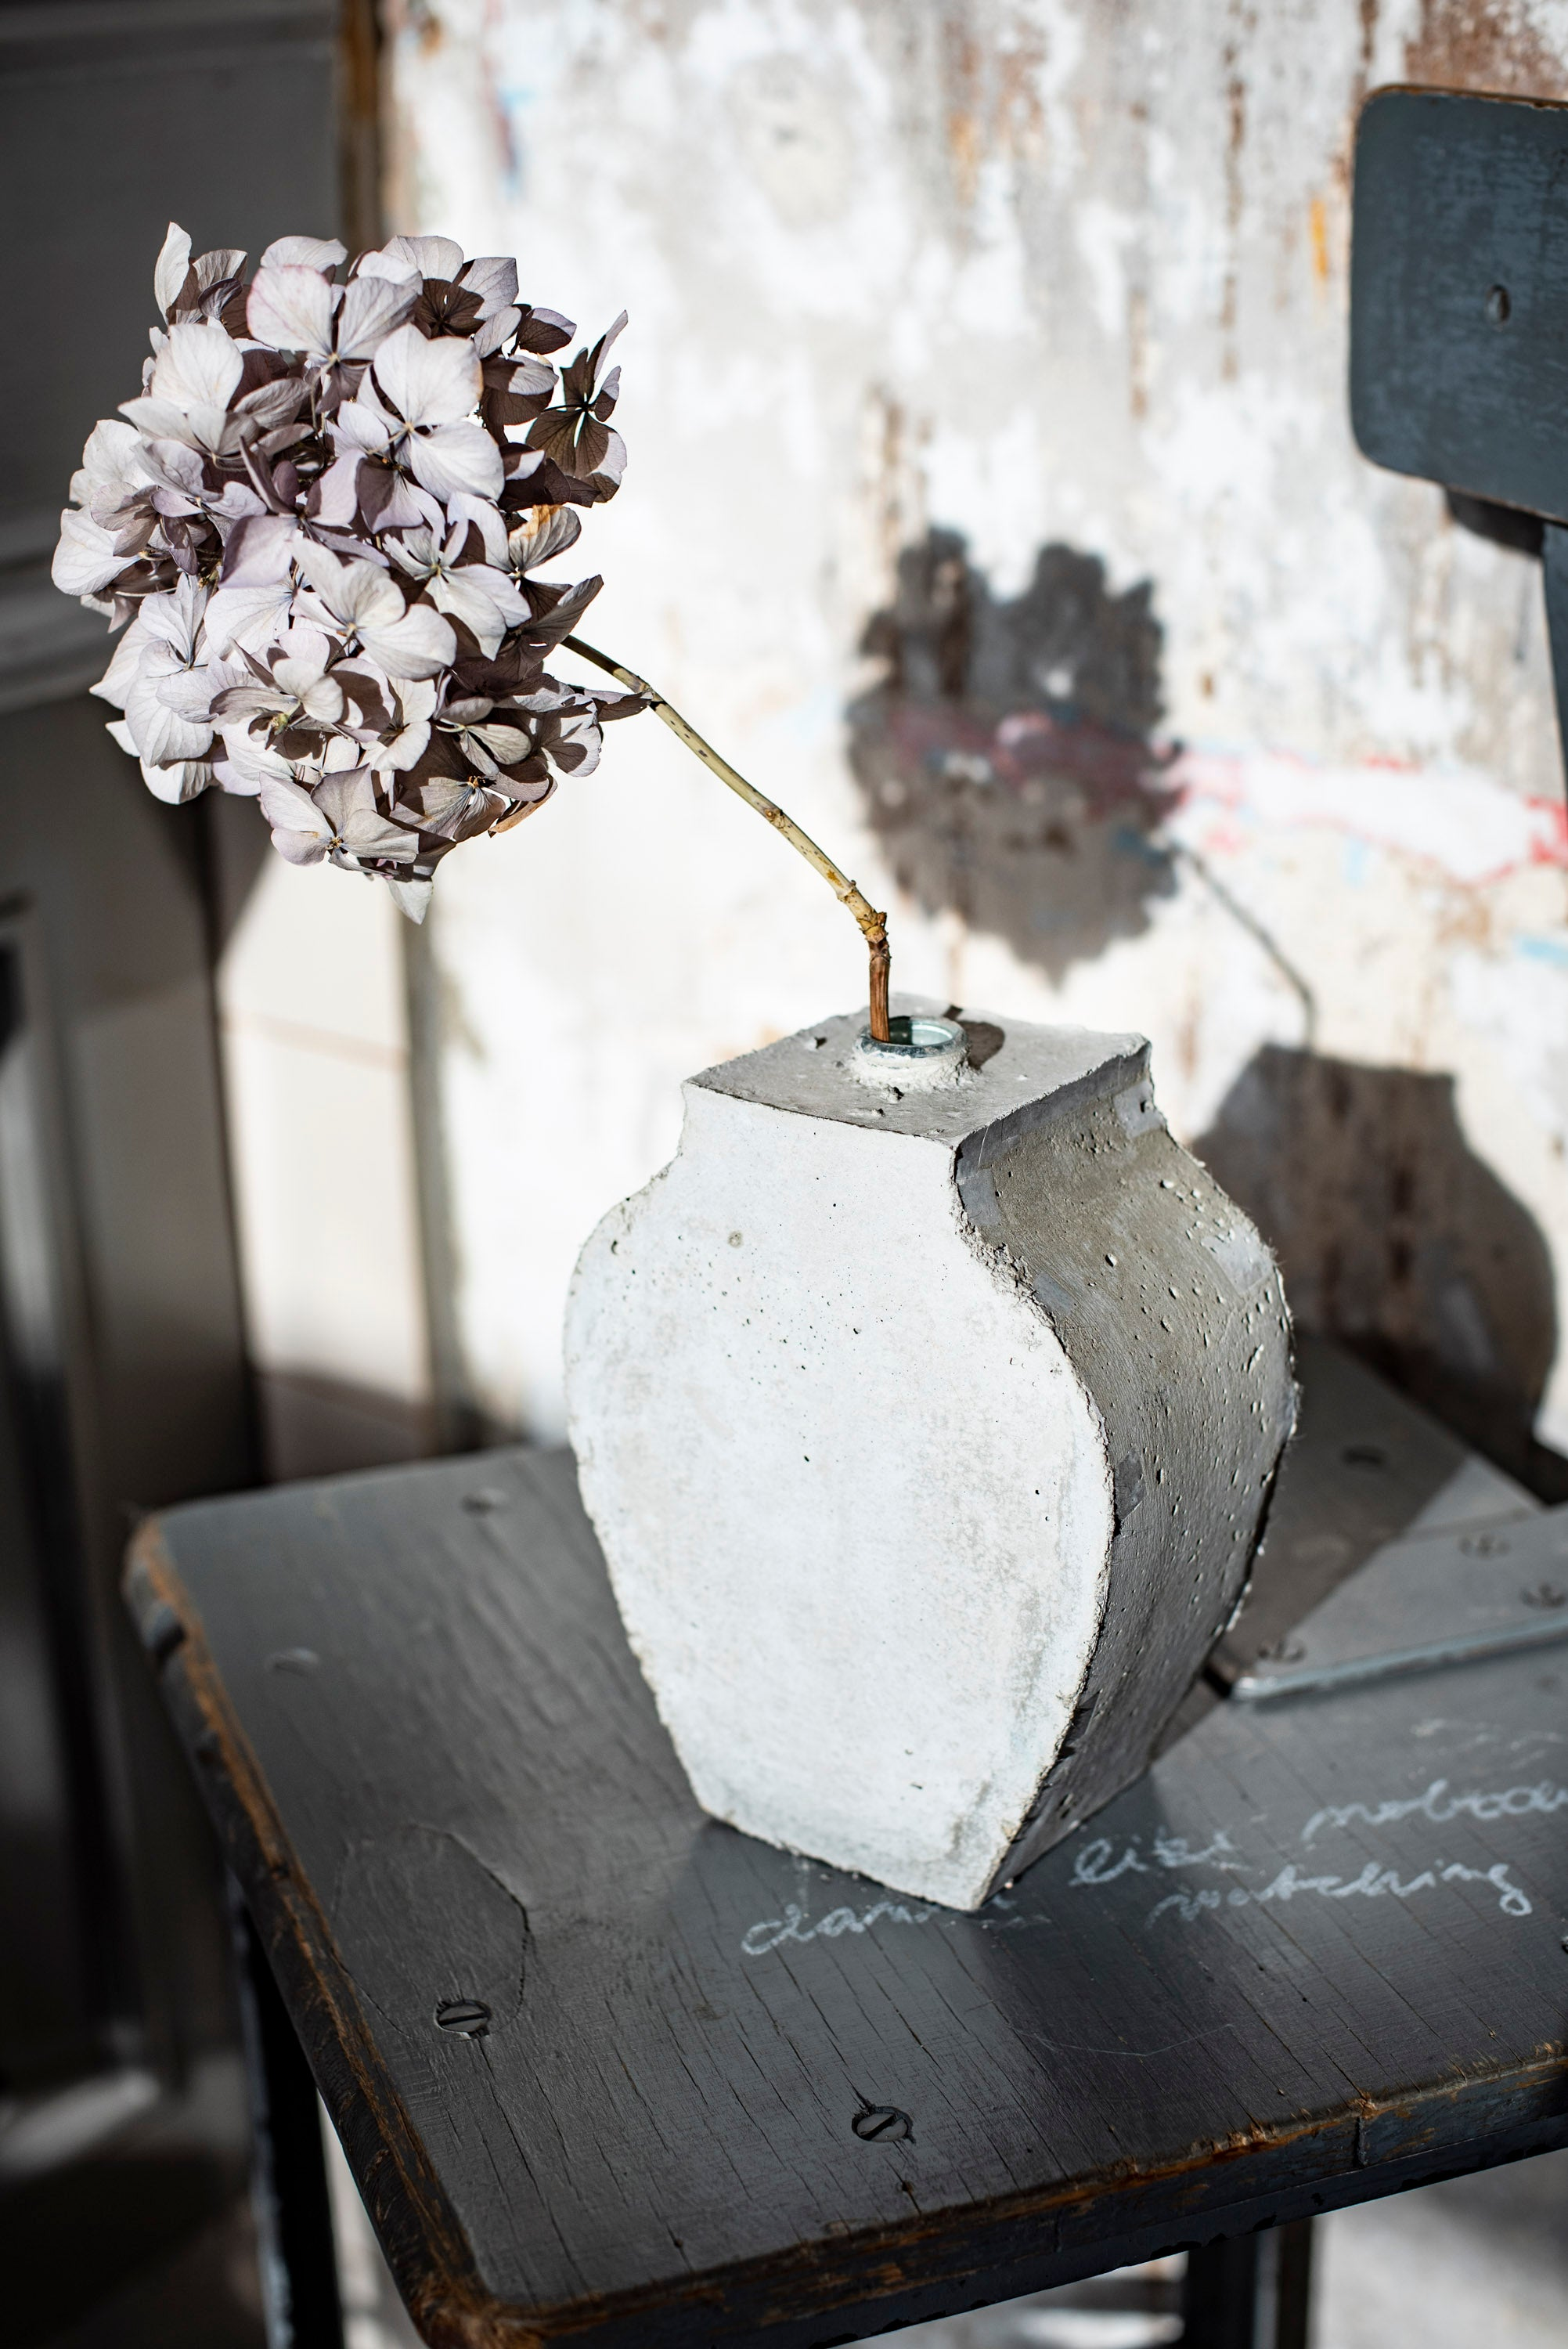 Art vase created by the Prague artist Petra Svejdarova a.k.a. Prasklo. Used materials are recycled glass and raw concrete without any plastificators.